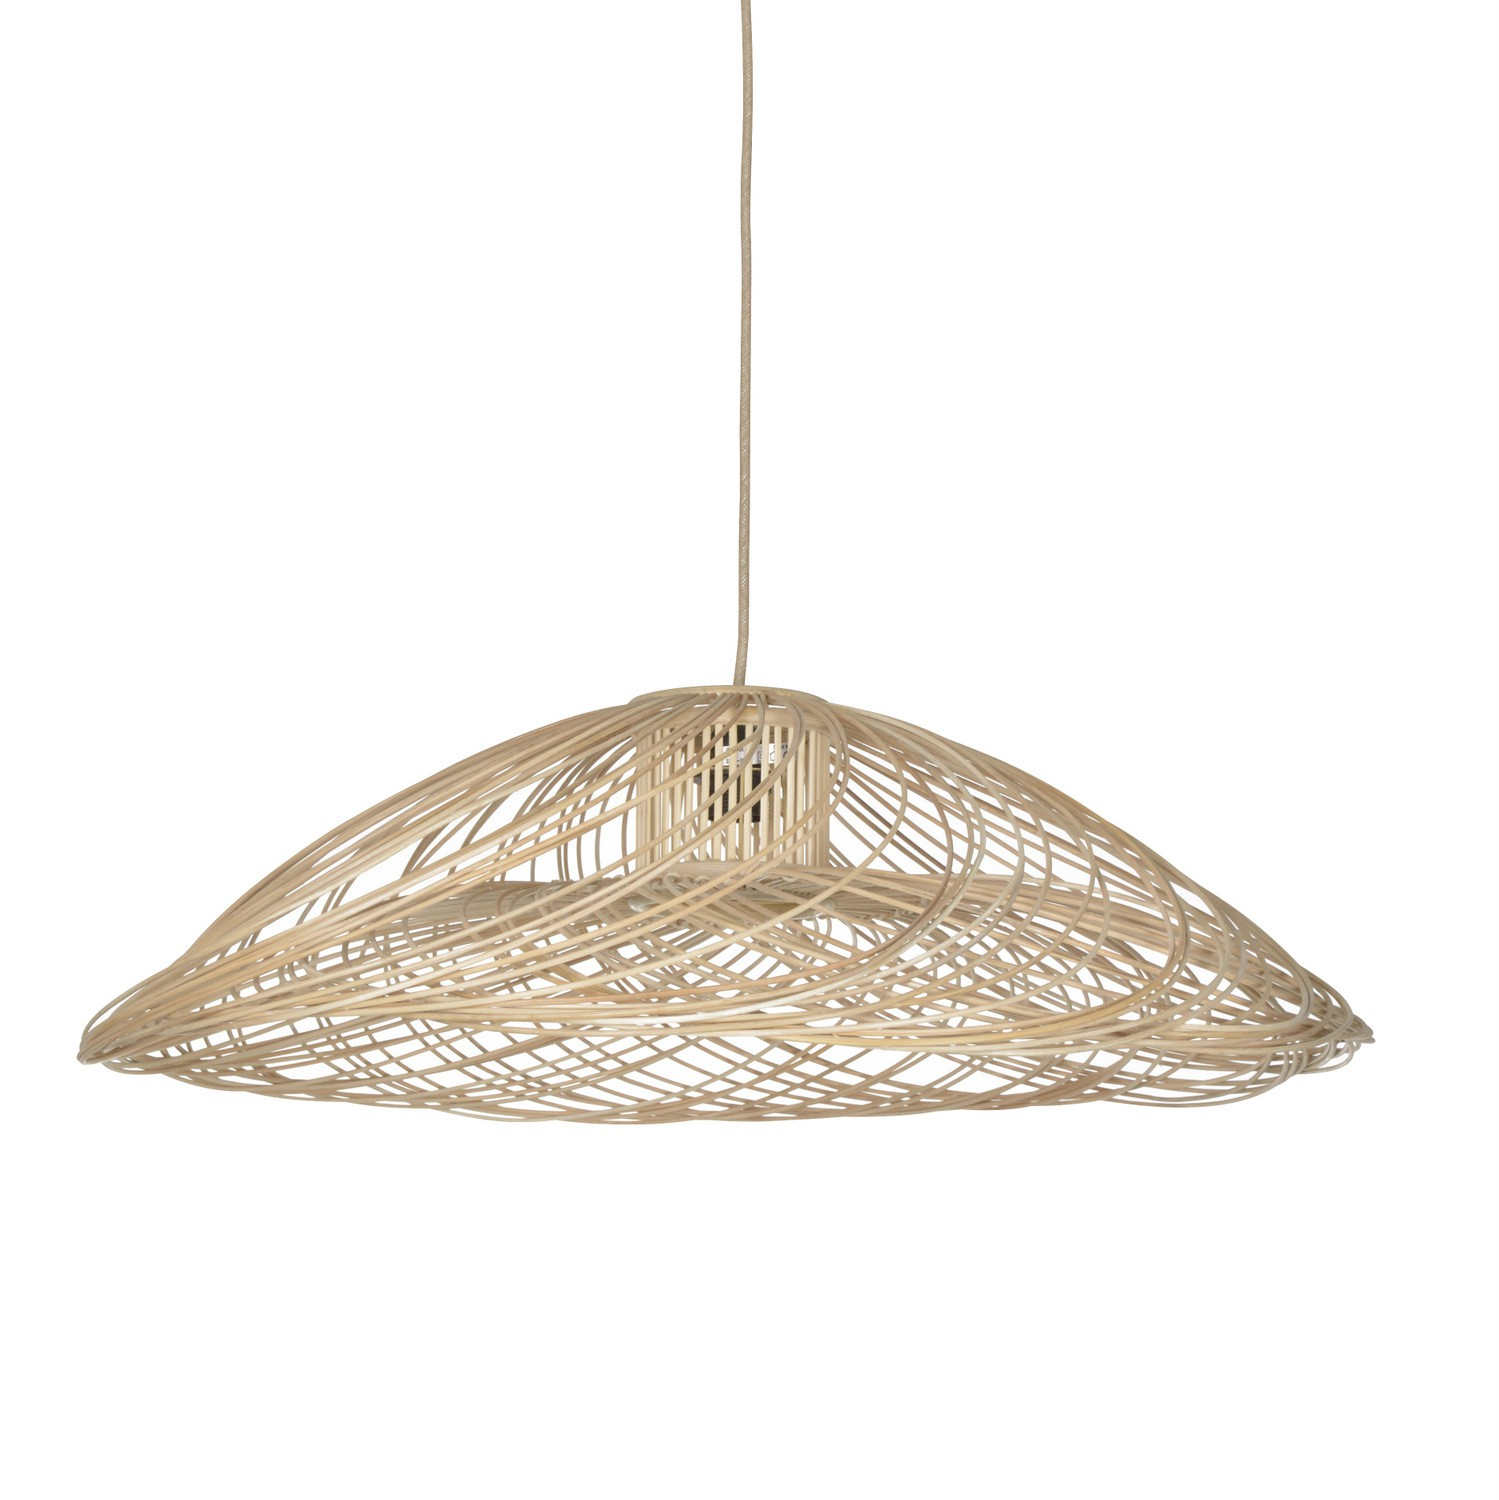 Suspension Satelise Rotin Naturel   Forestier